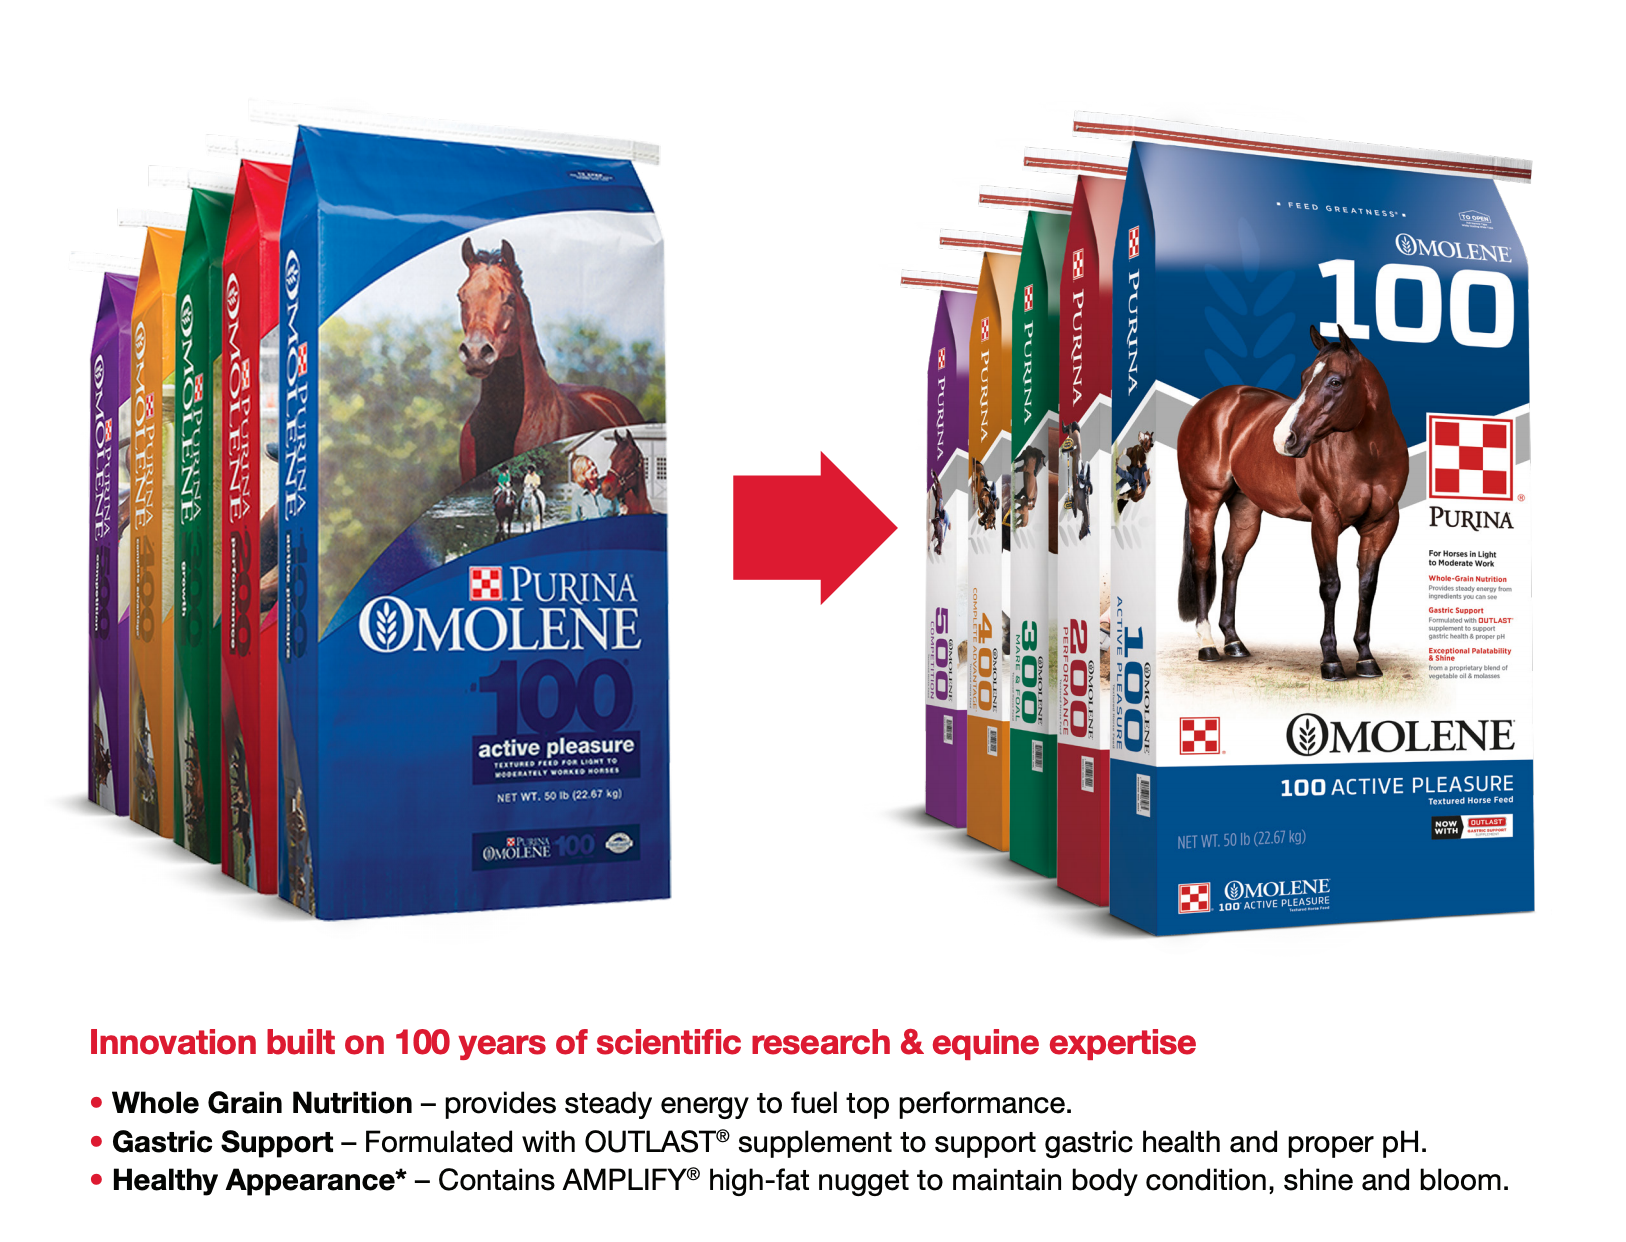 Purina Omolene with Outlast Gastric Supplement